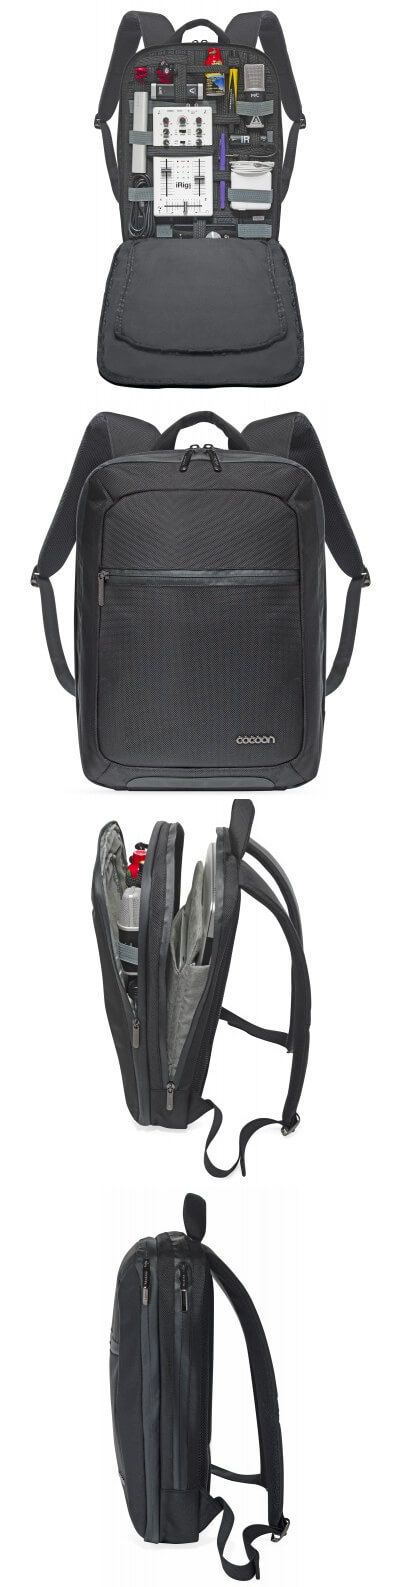 cocoon SLIM backpack with GRID! IT